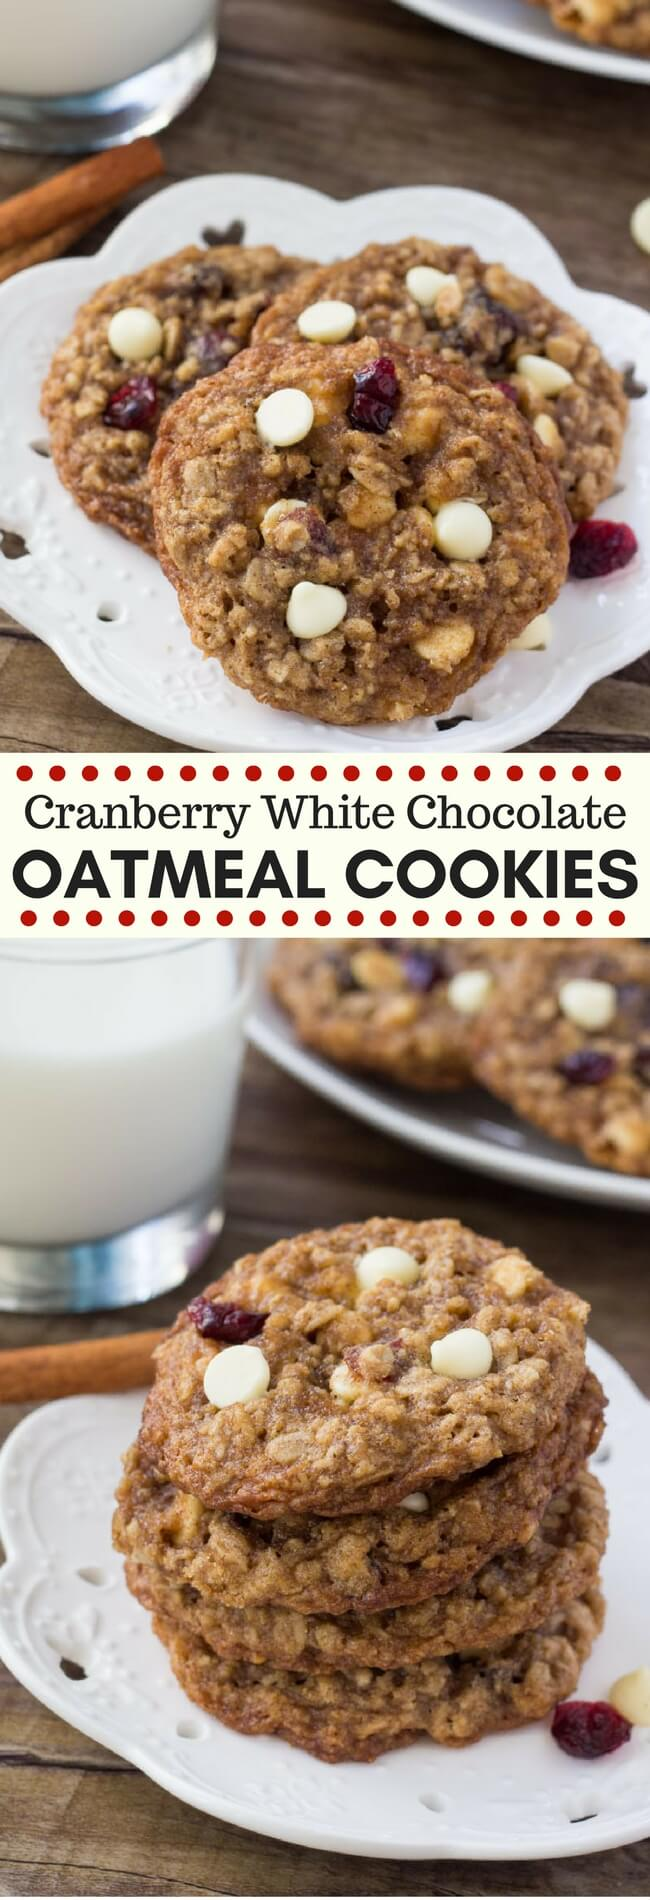 The softest, chewiest White Chocolate Chip Cranberry Oatmeal Cookies. Rustic, homey & 100% delicious - these cookies are perfect for the holidays.#whitechocolatecranberry #oatmealcookies